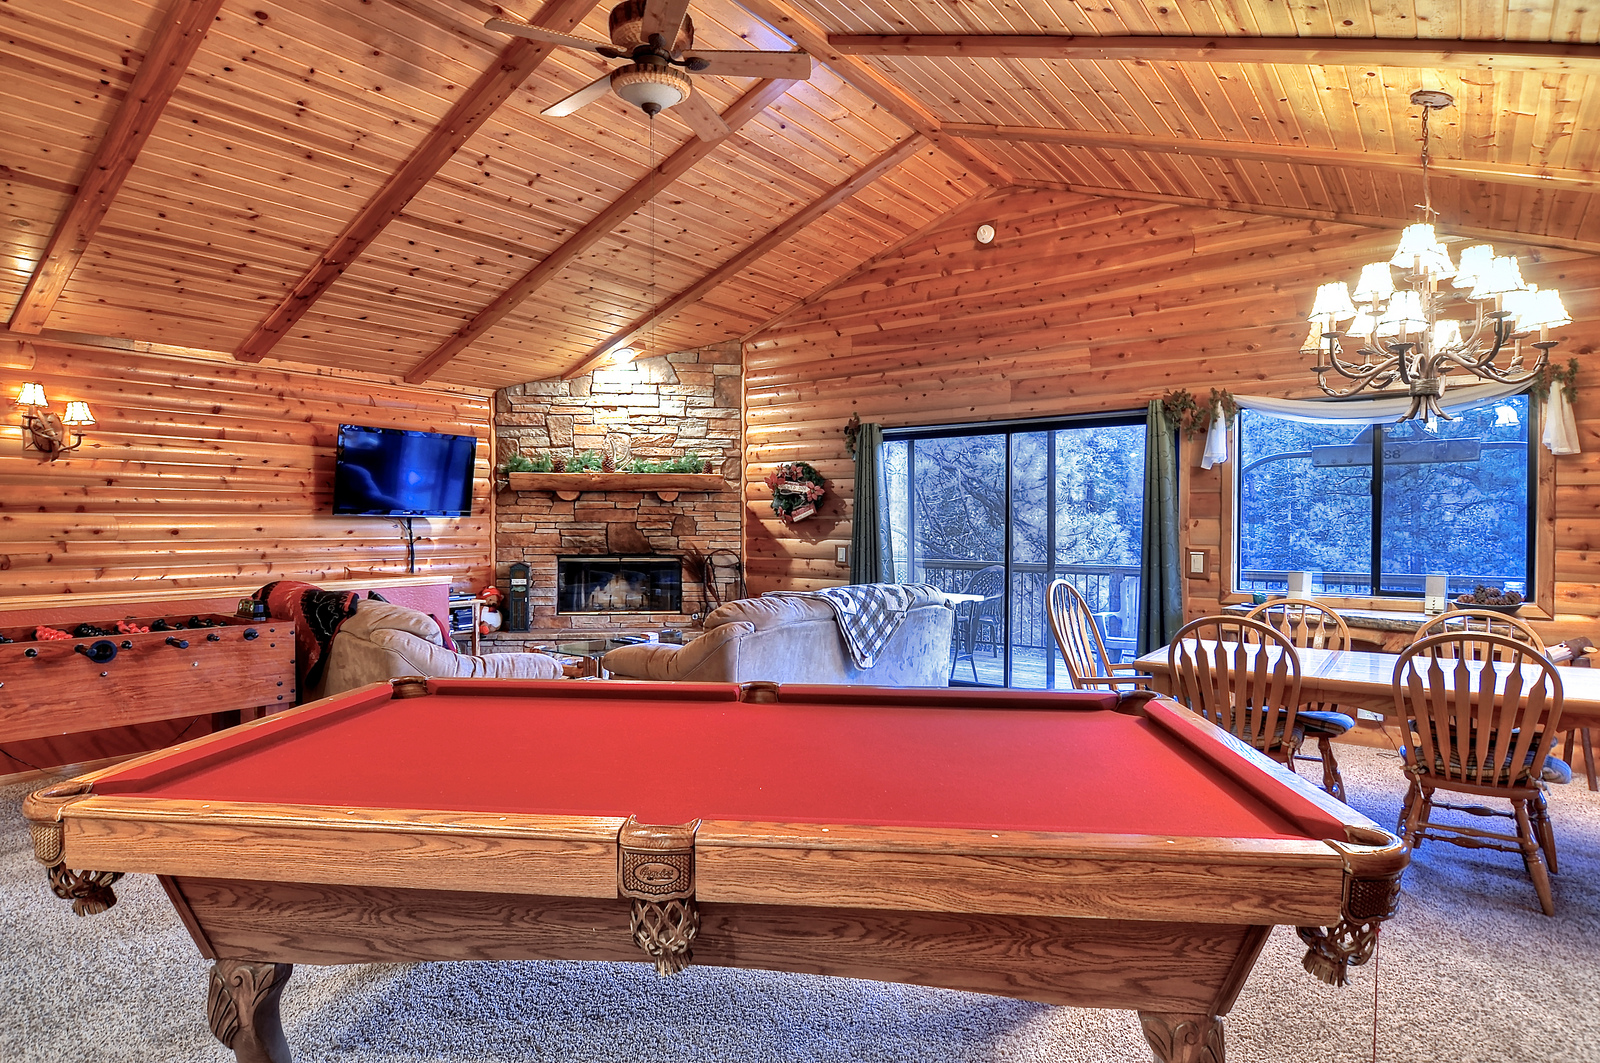 1A5762A4-155D-0010-07ADCE88424AB8C0-743 Butte-01-Living Room-Pool Table.jpg